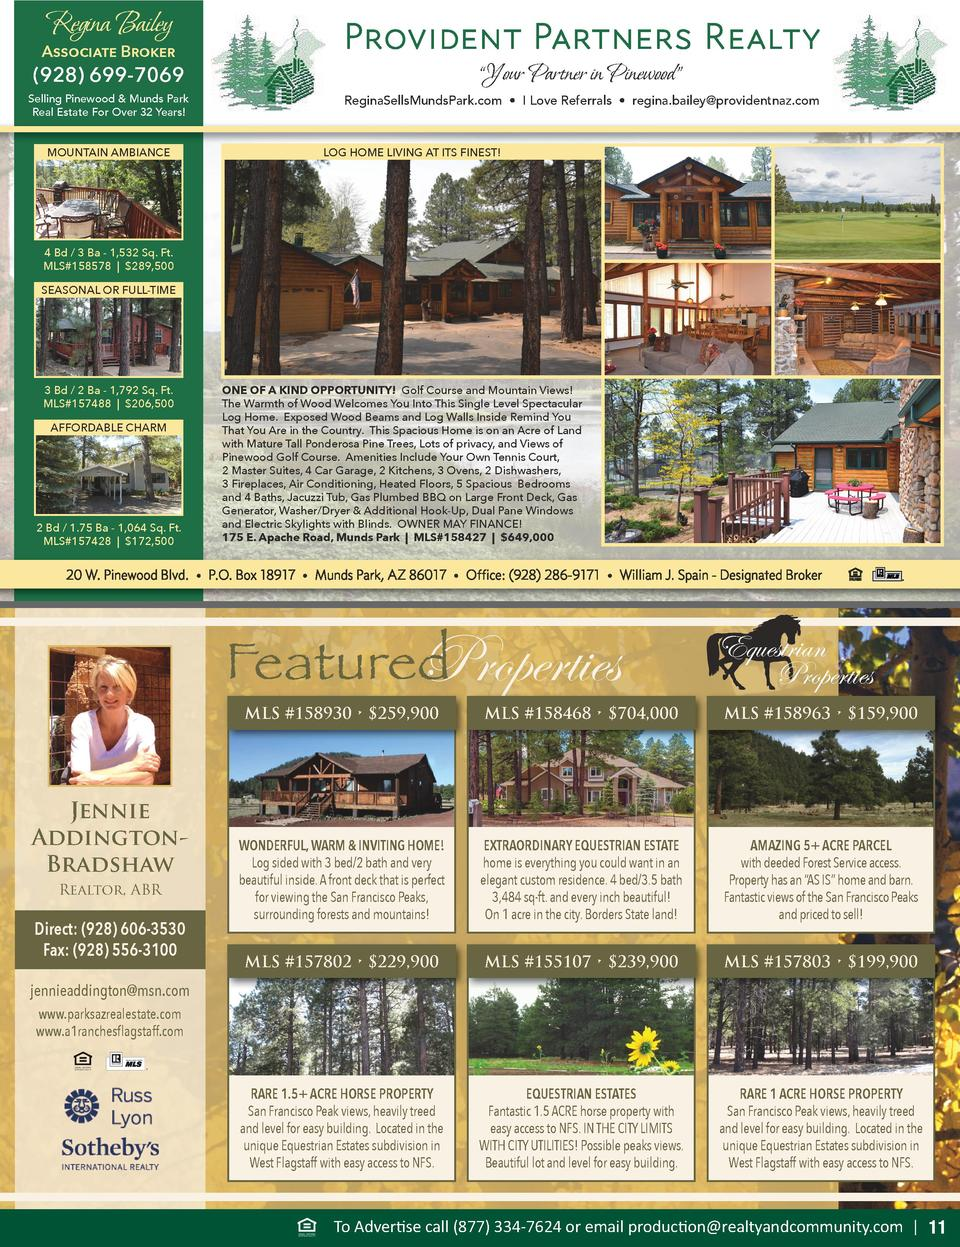 Regina Bailey  Associate Broker   928  699-7069  Selling Pinewood   Munds Park Real Estate For Over 32 Years  MOUNTAIN AMB...